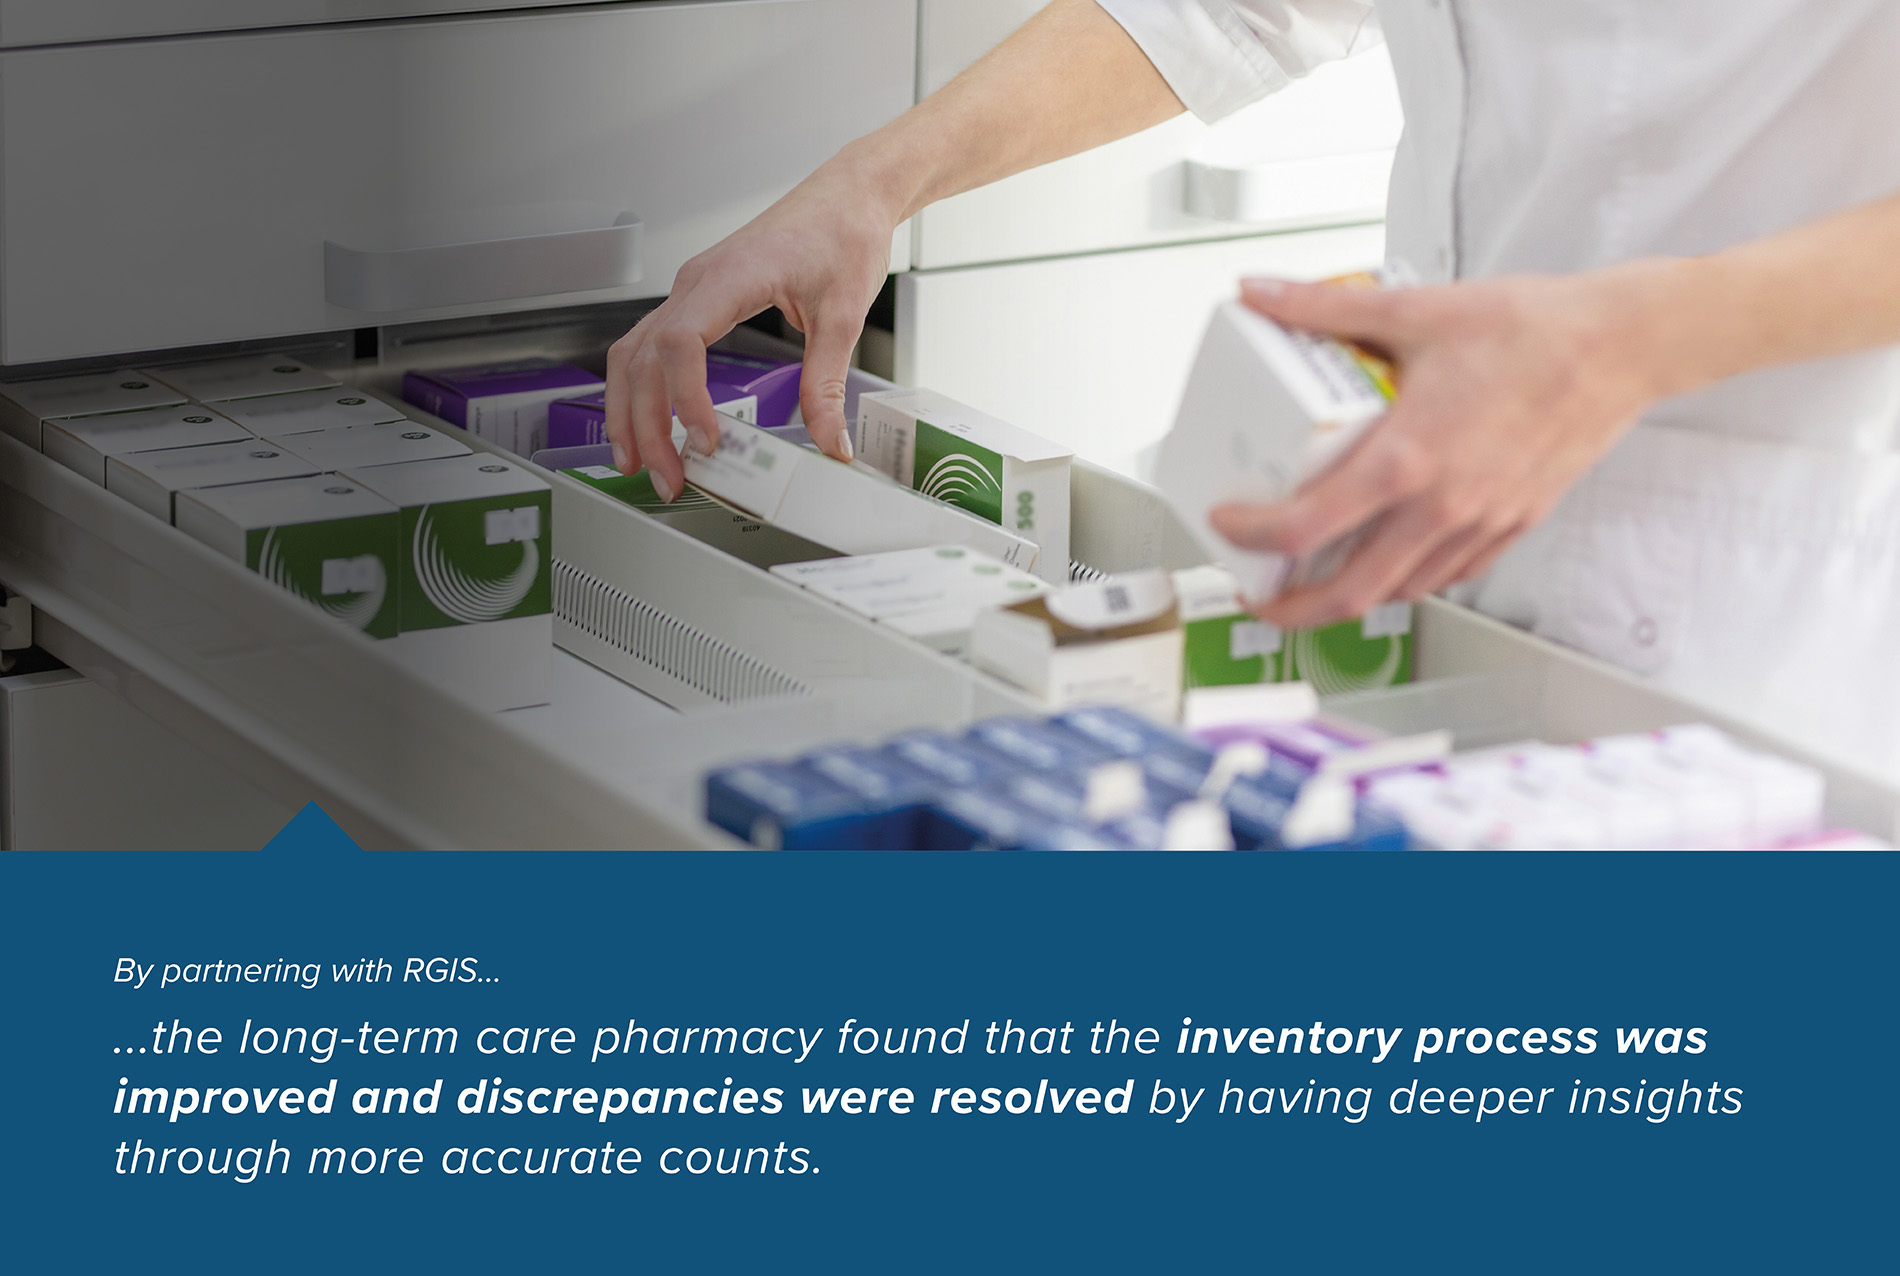 Long-Term Care Pharmacy Inventory Count